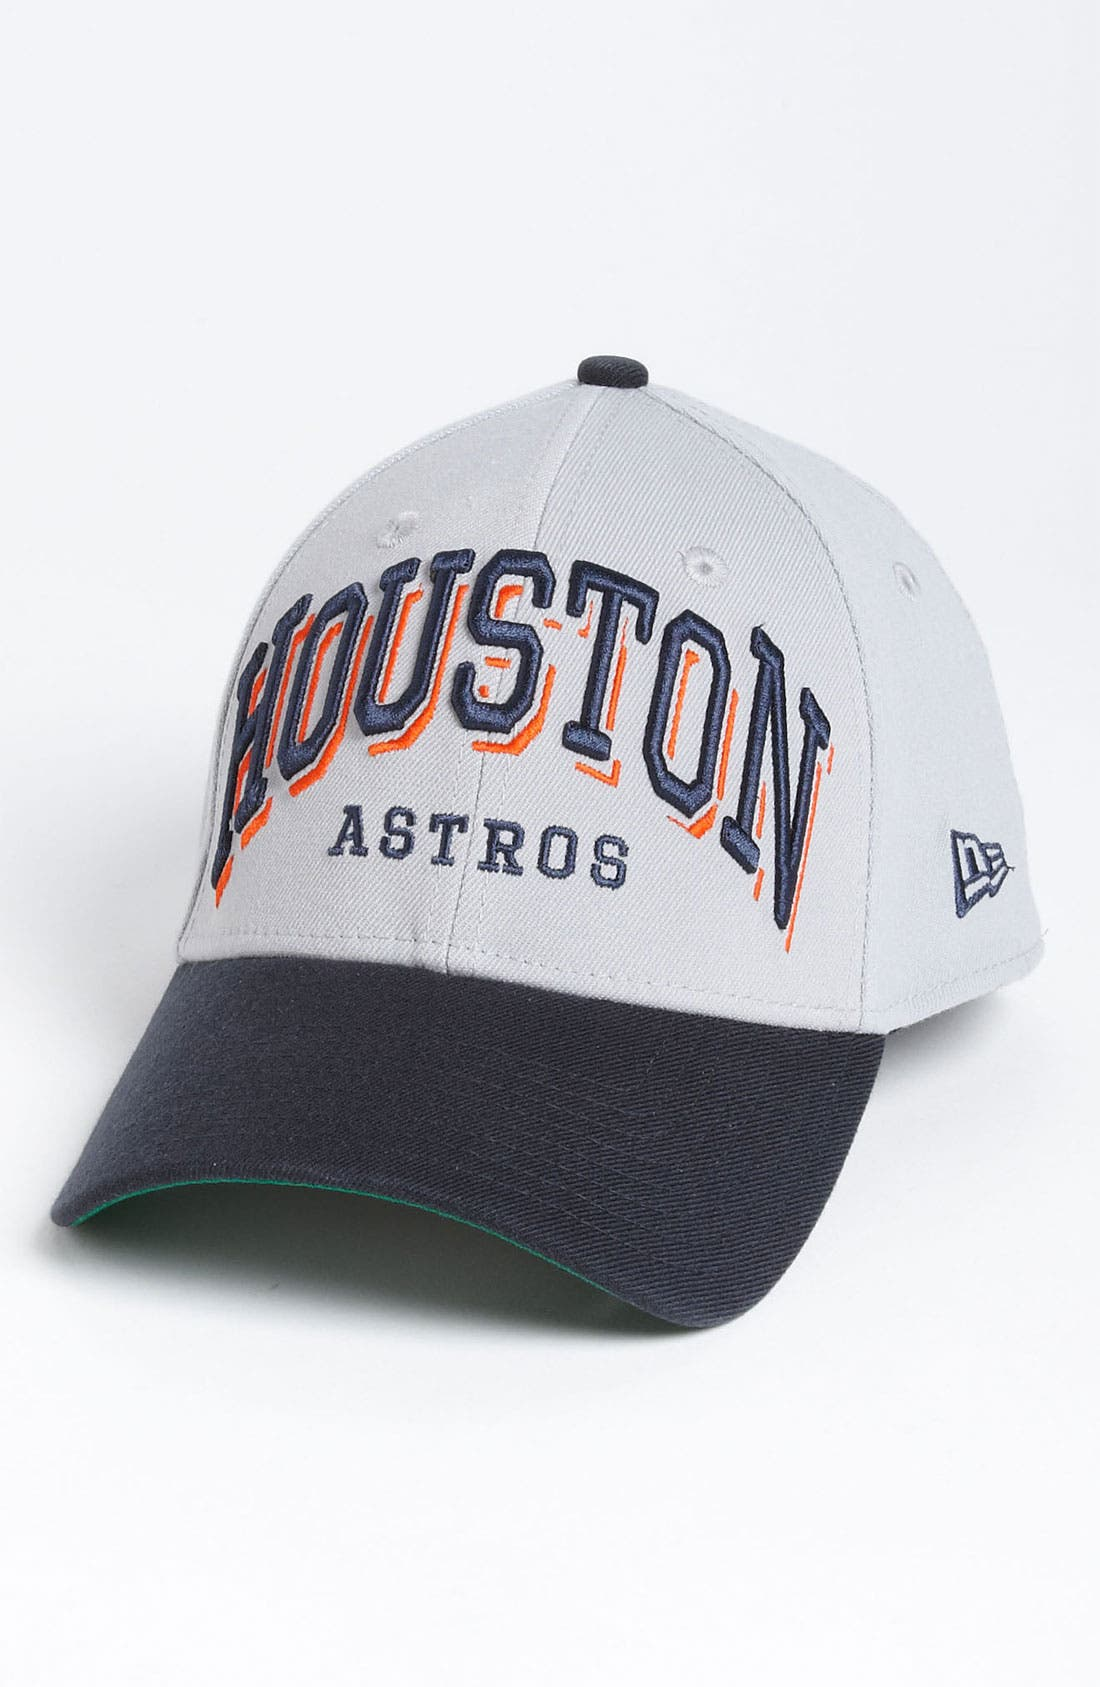 Main Image - New Era Cap 'Houston Astros - Arch Mark' Fitted Baseball Cap